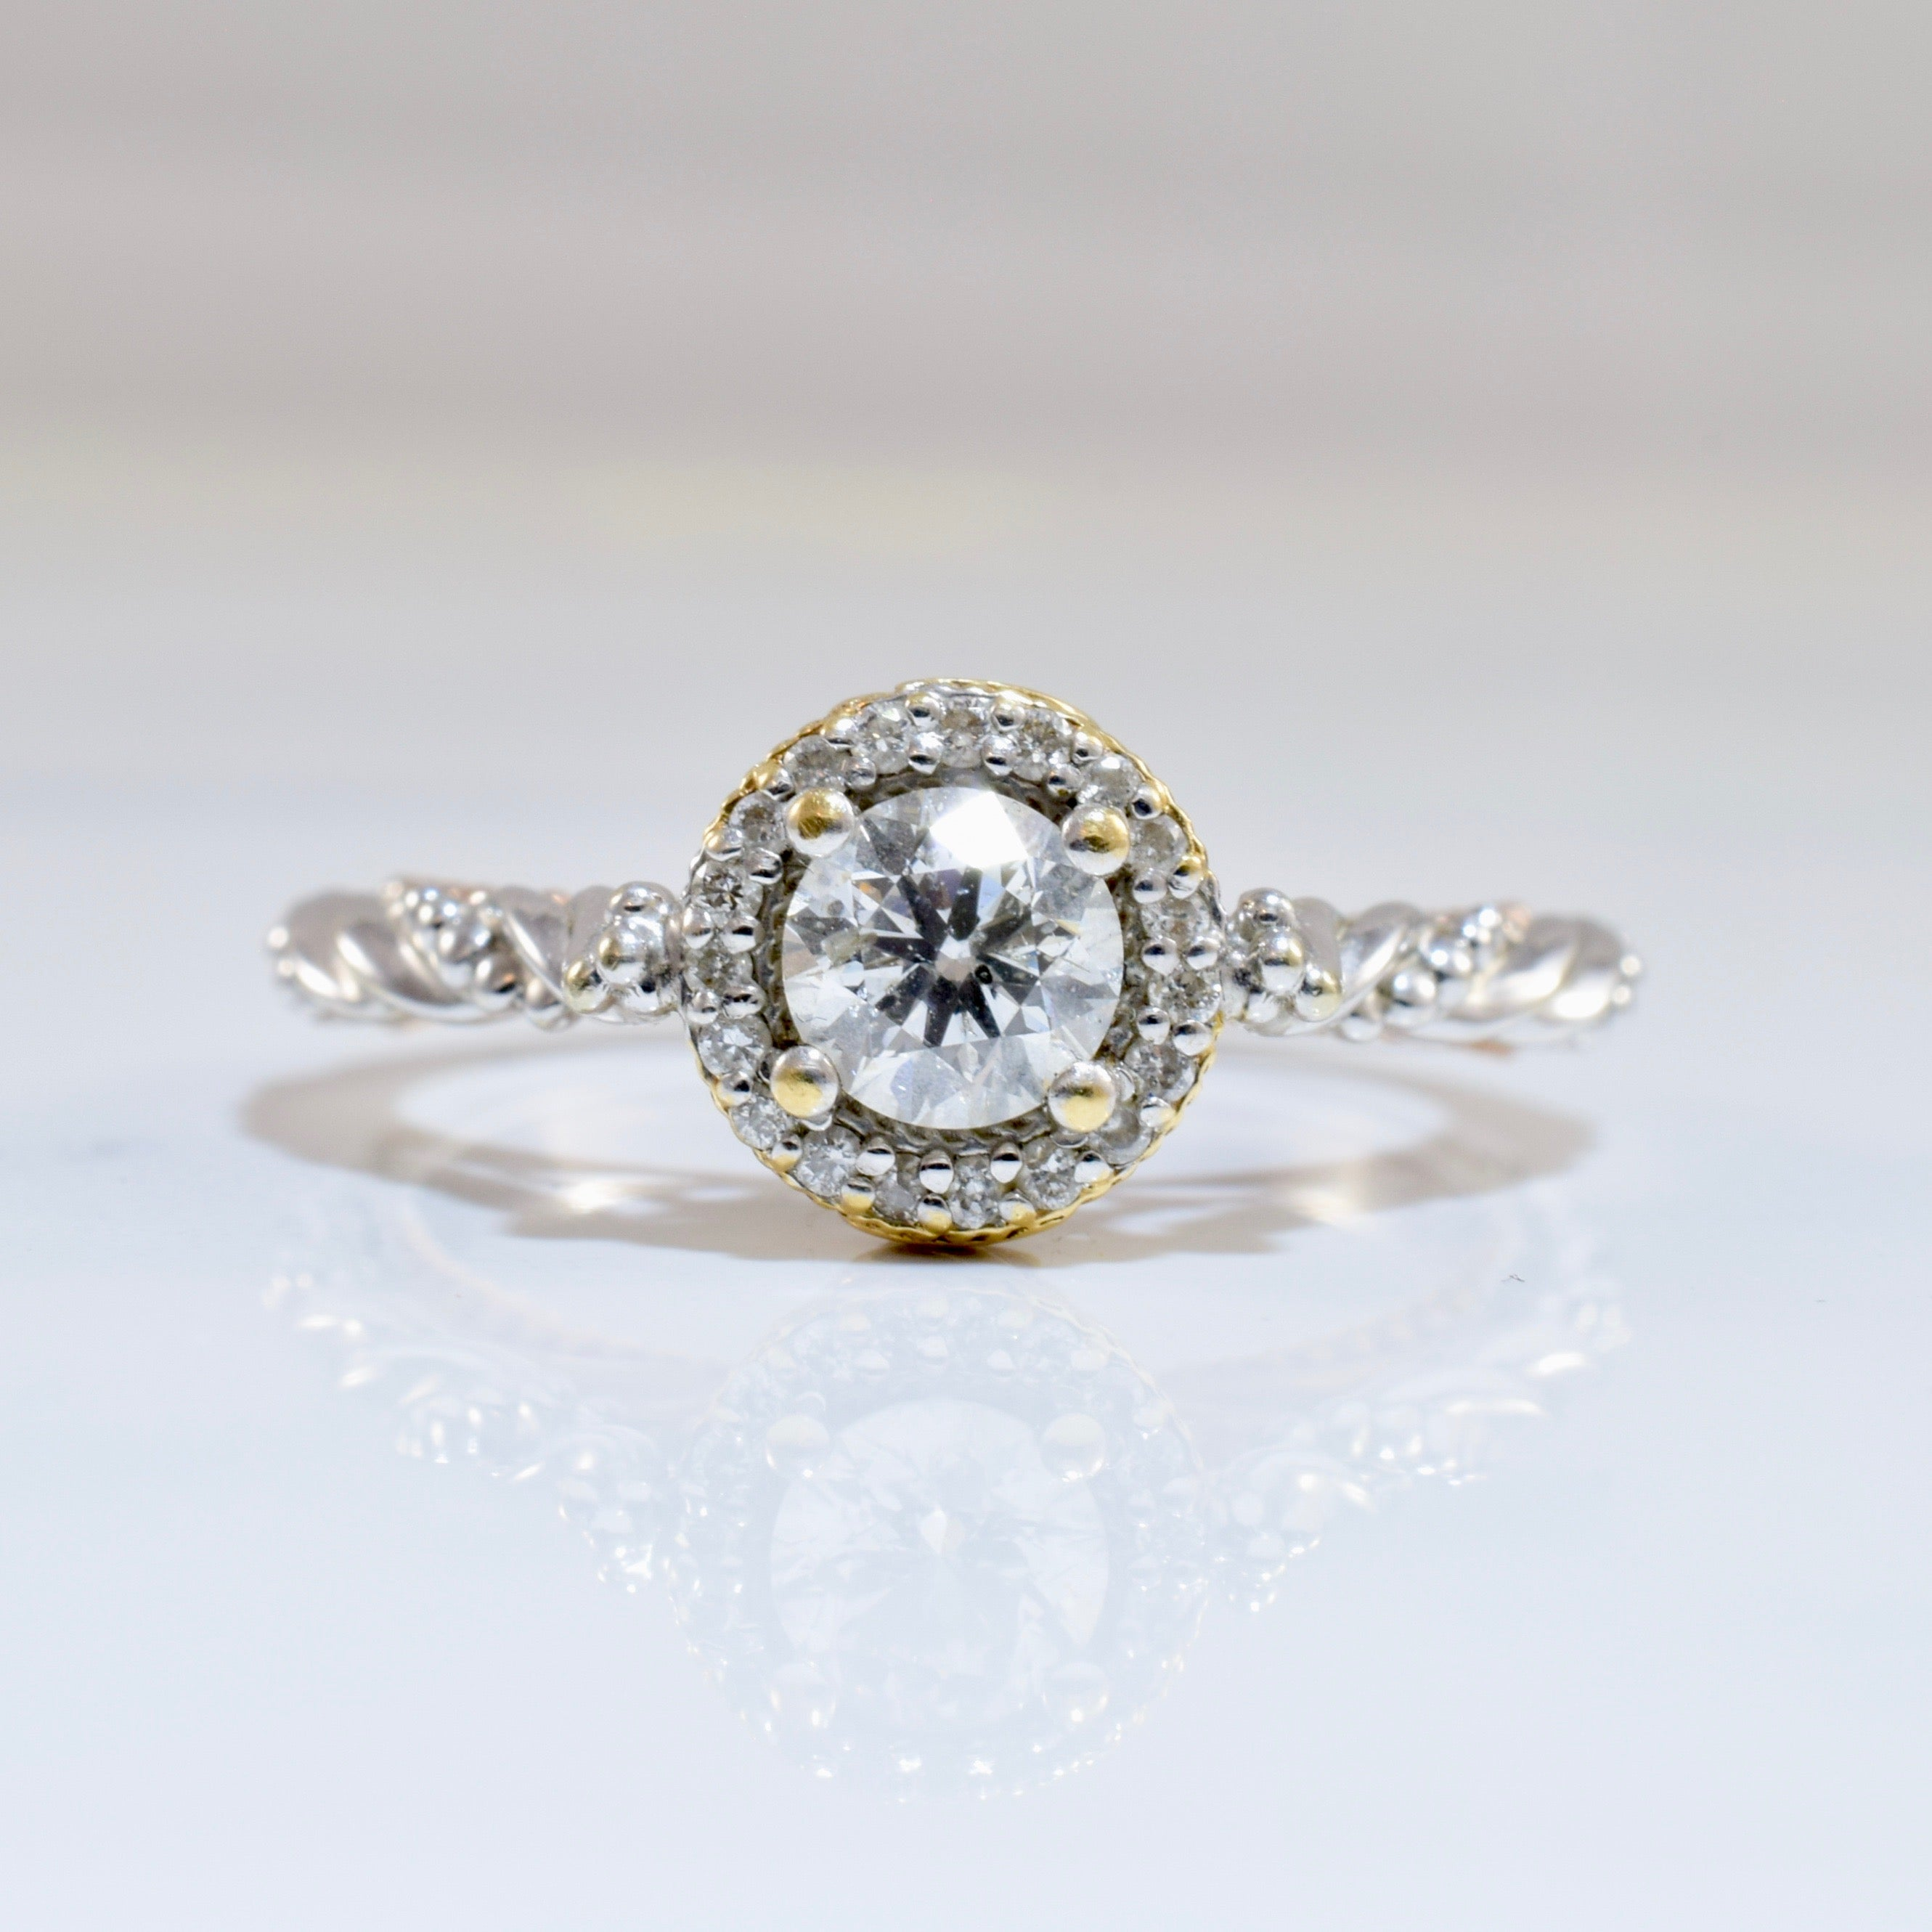 Detailed Diamond Halo Engagement Ring | 0.60 ctw SZ 7.75 |